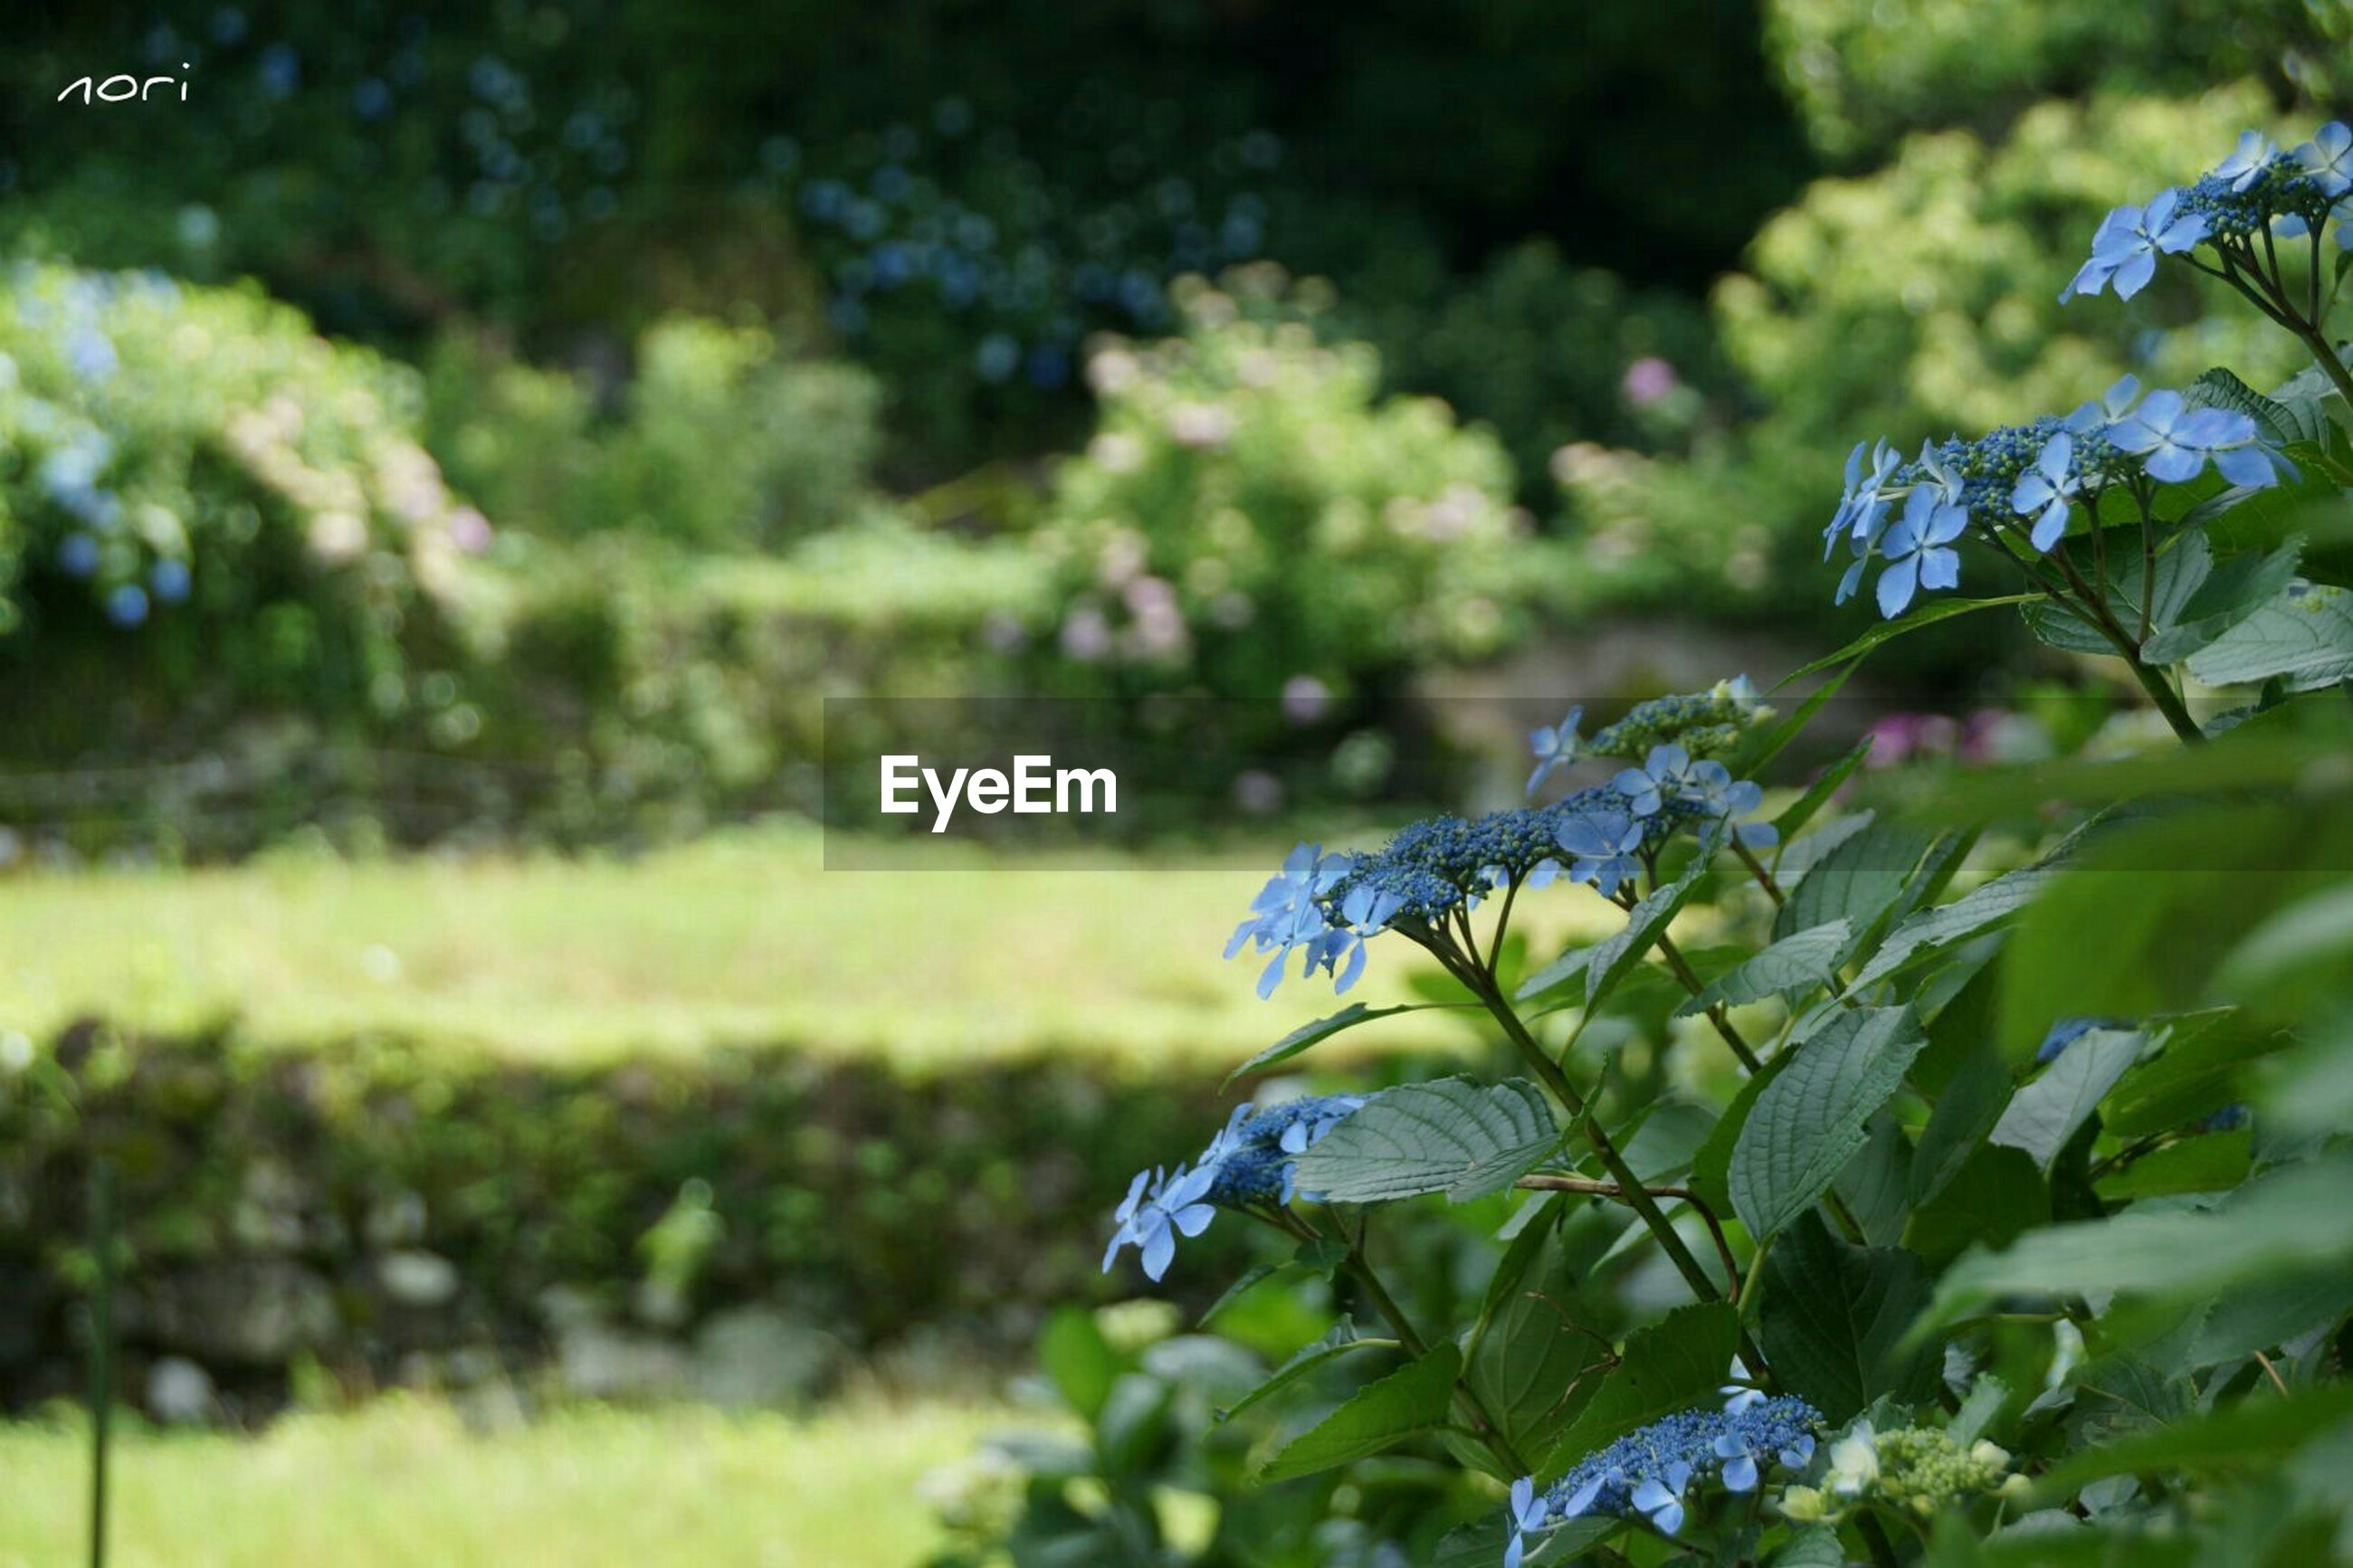 flower, growth, freshness, focus on foreground, plant, purple, beauty in nature, green color, fragility, nature, close-up, selective focus, blooming, leaf, field, stem, blue, park - man made space, day, green